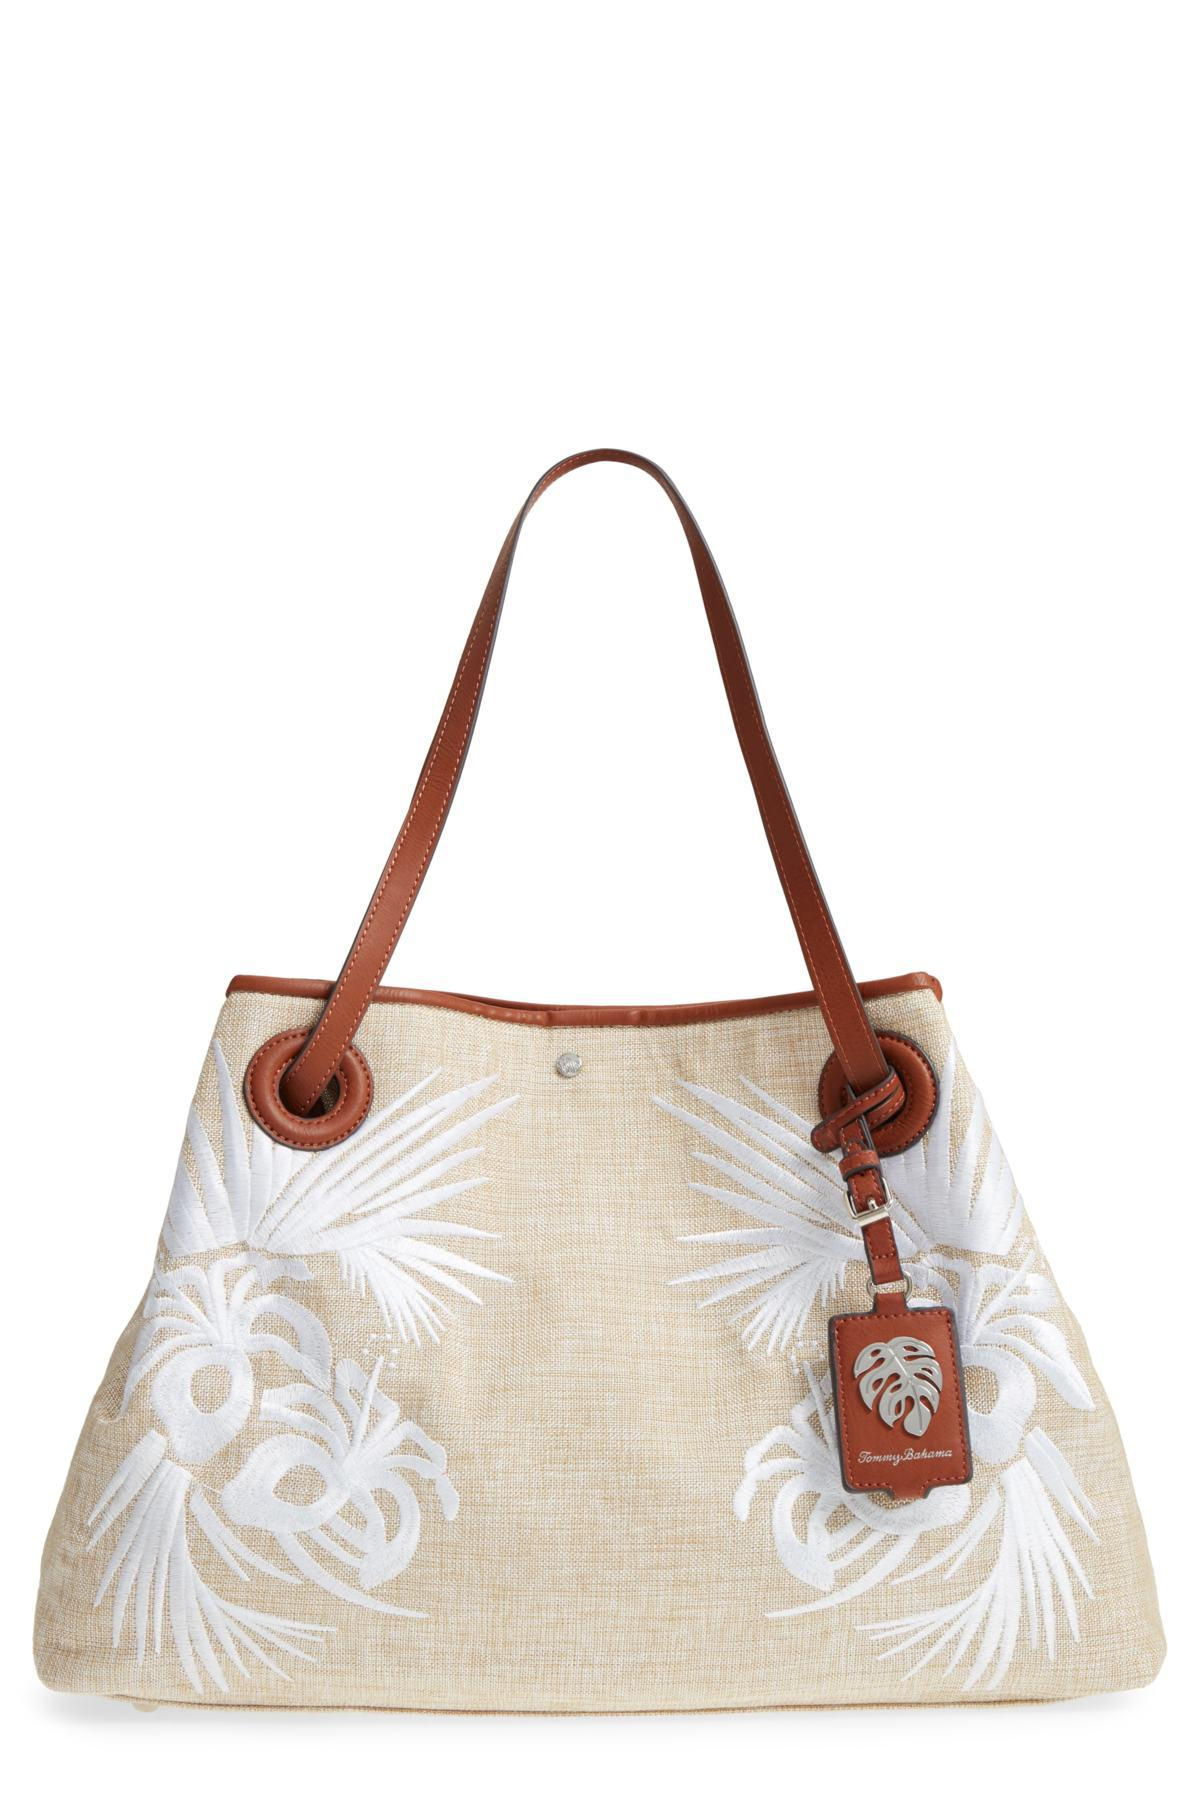 23e95c741 Lyst - Tommy Bahama Waikiki Embroidered Canvas Tote in White